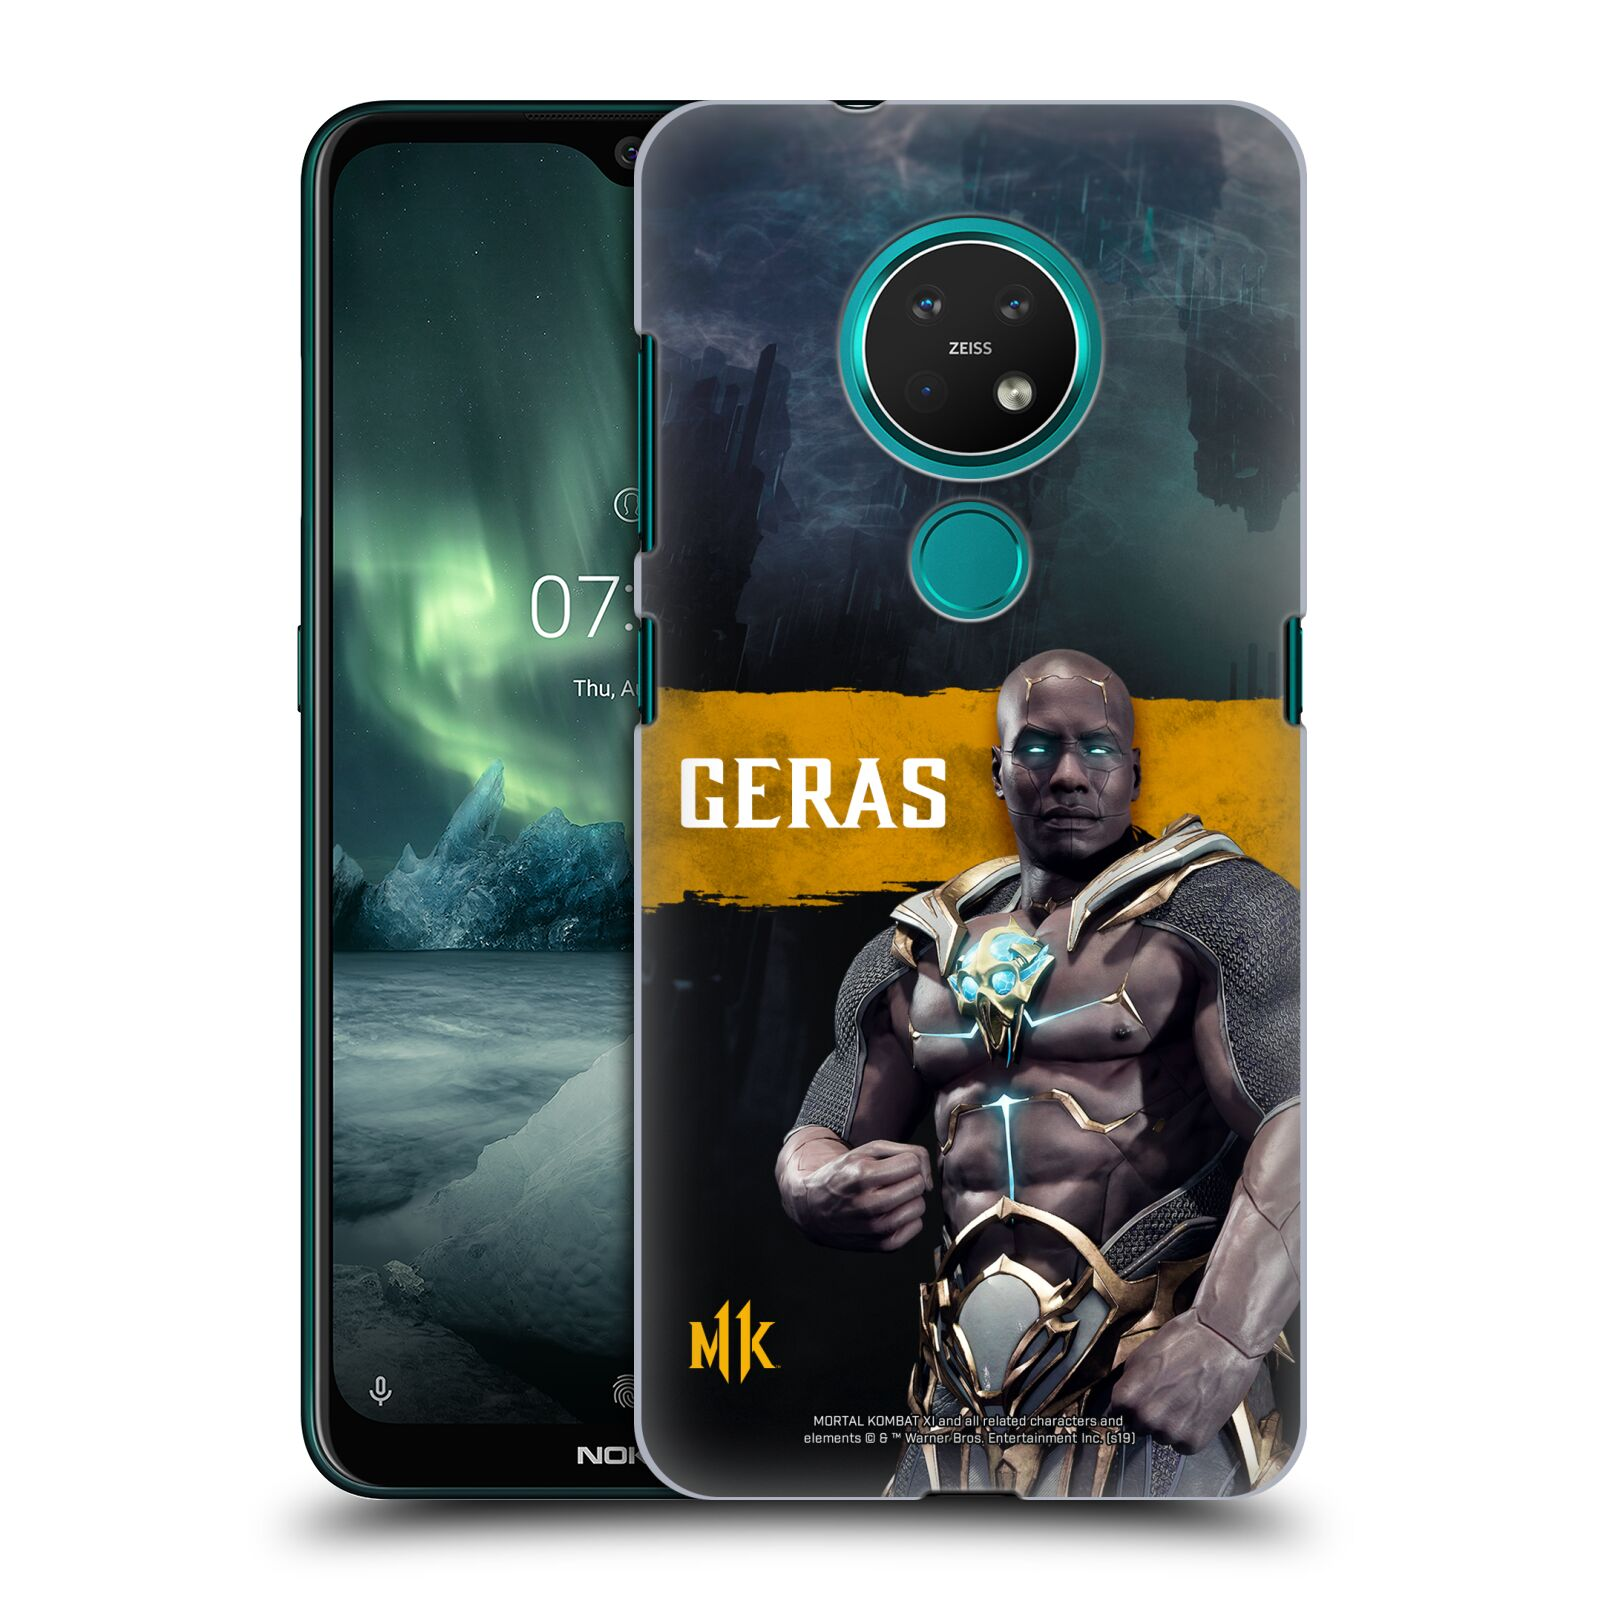 Official Mortal Kombat 11 Characters Geras Case for Nokia 7.2